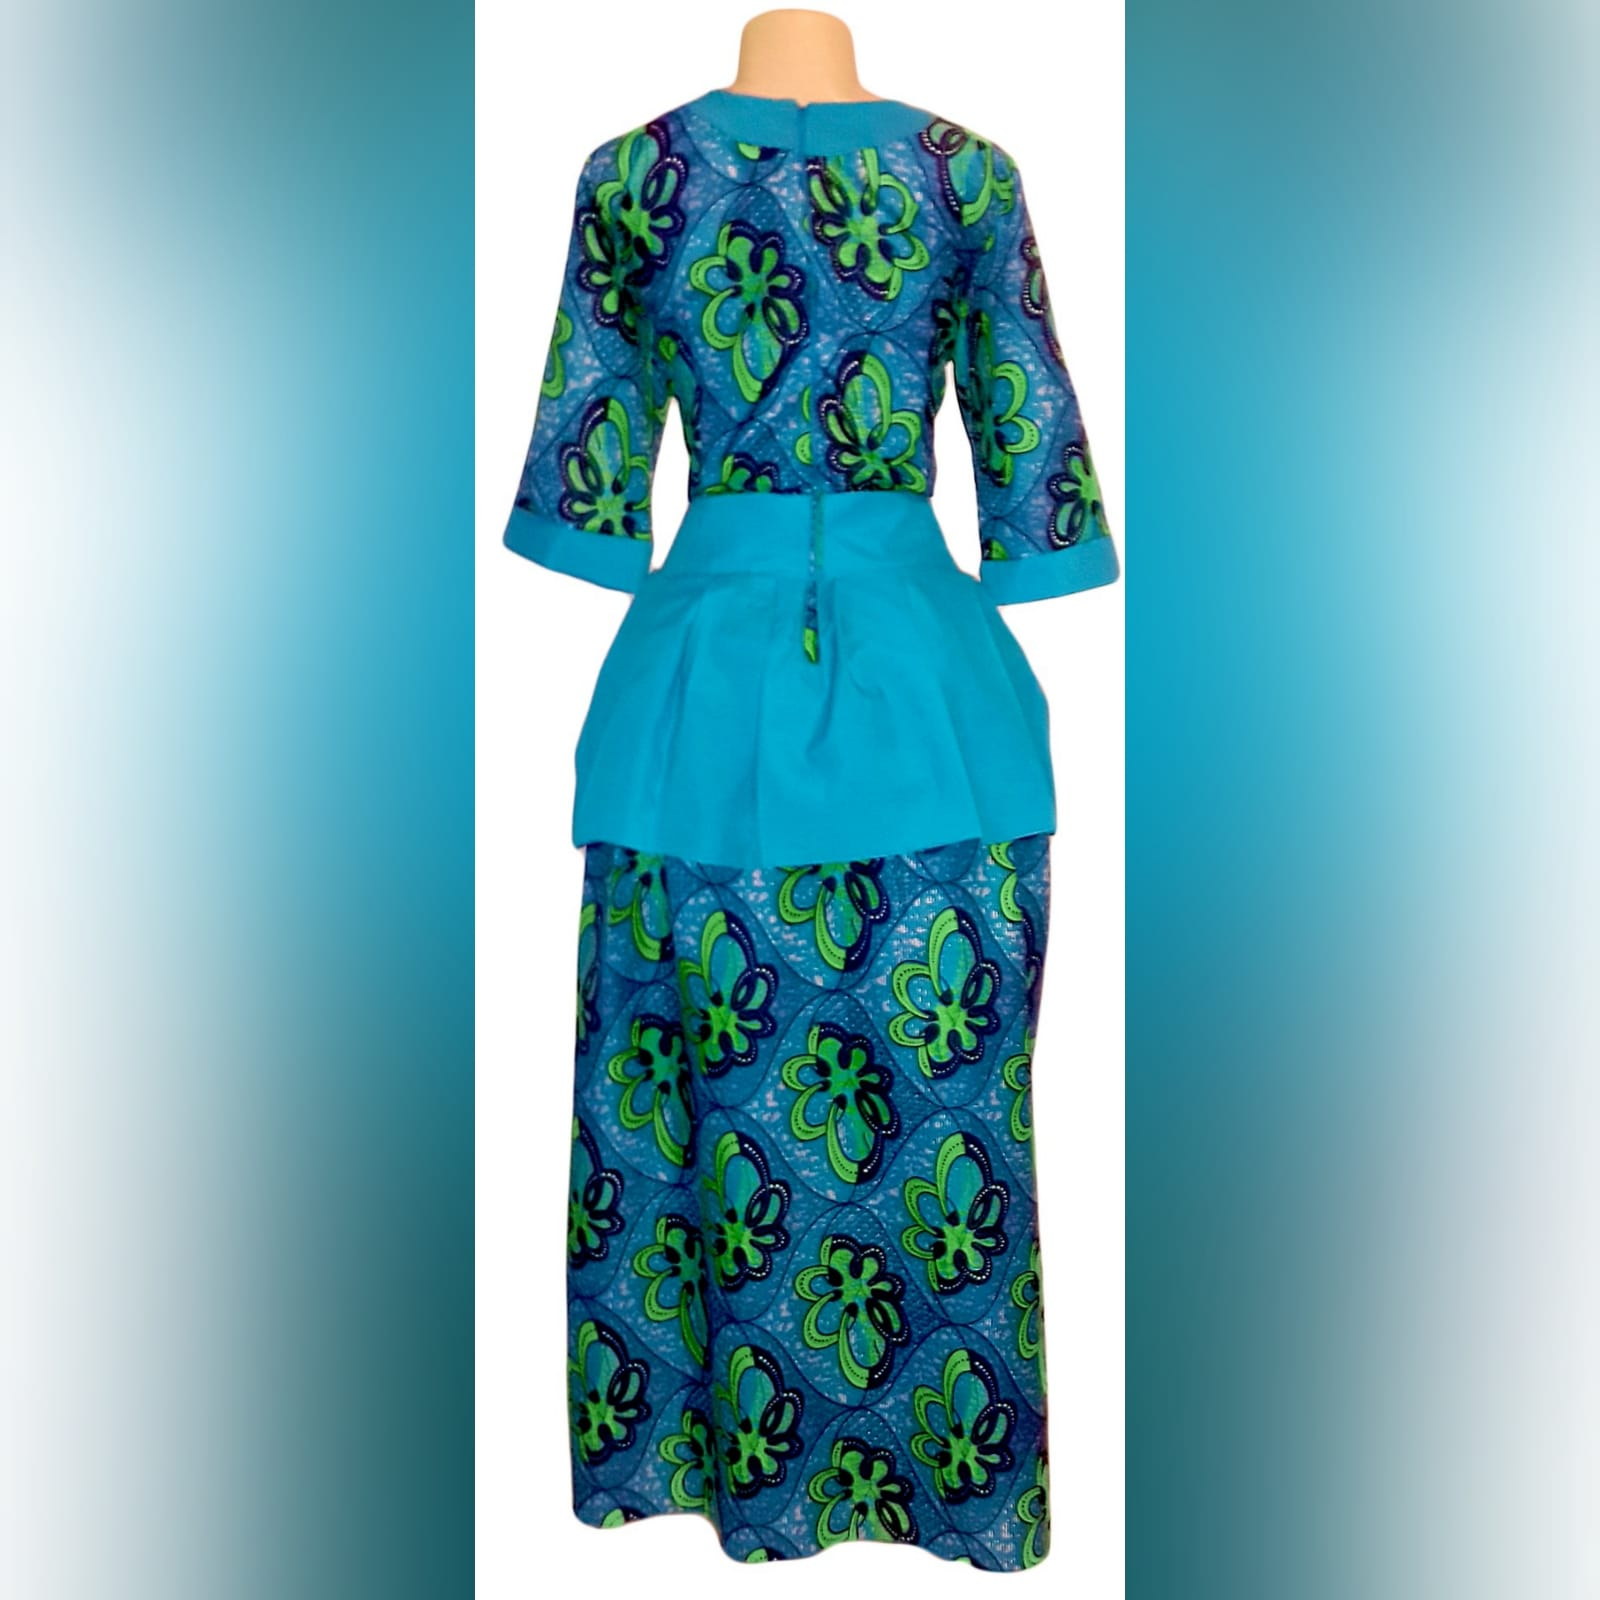 Modern traditional green and blue high low dress 3 modern traditional green and blue hi lo dress with a v neckline, 3/4 sleeves and a back peplum with a waistbelt. Matching doek.